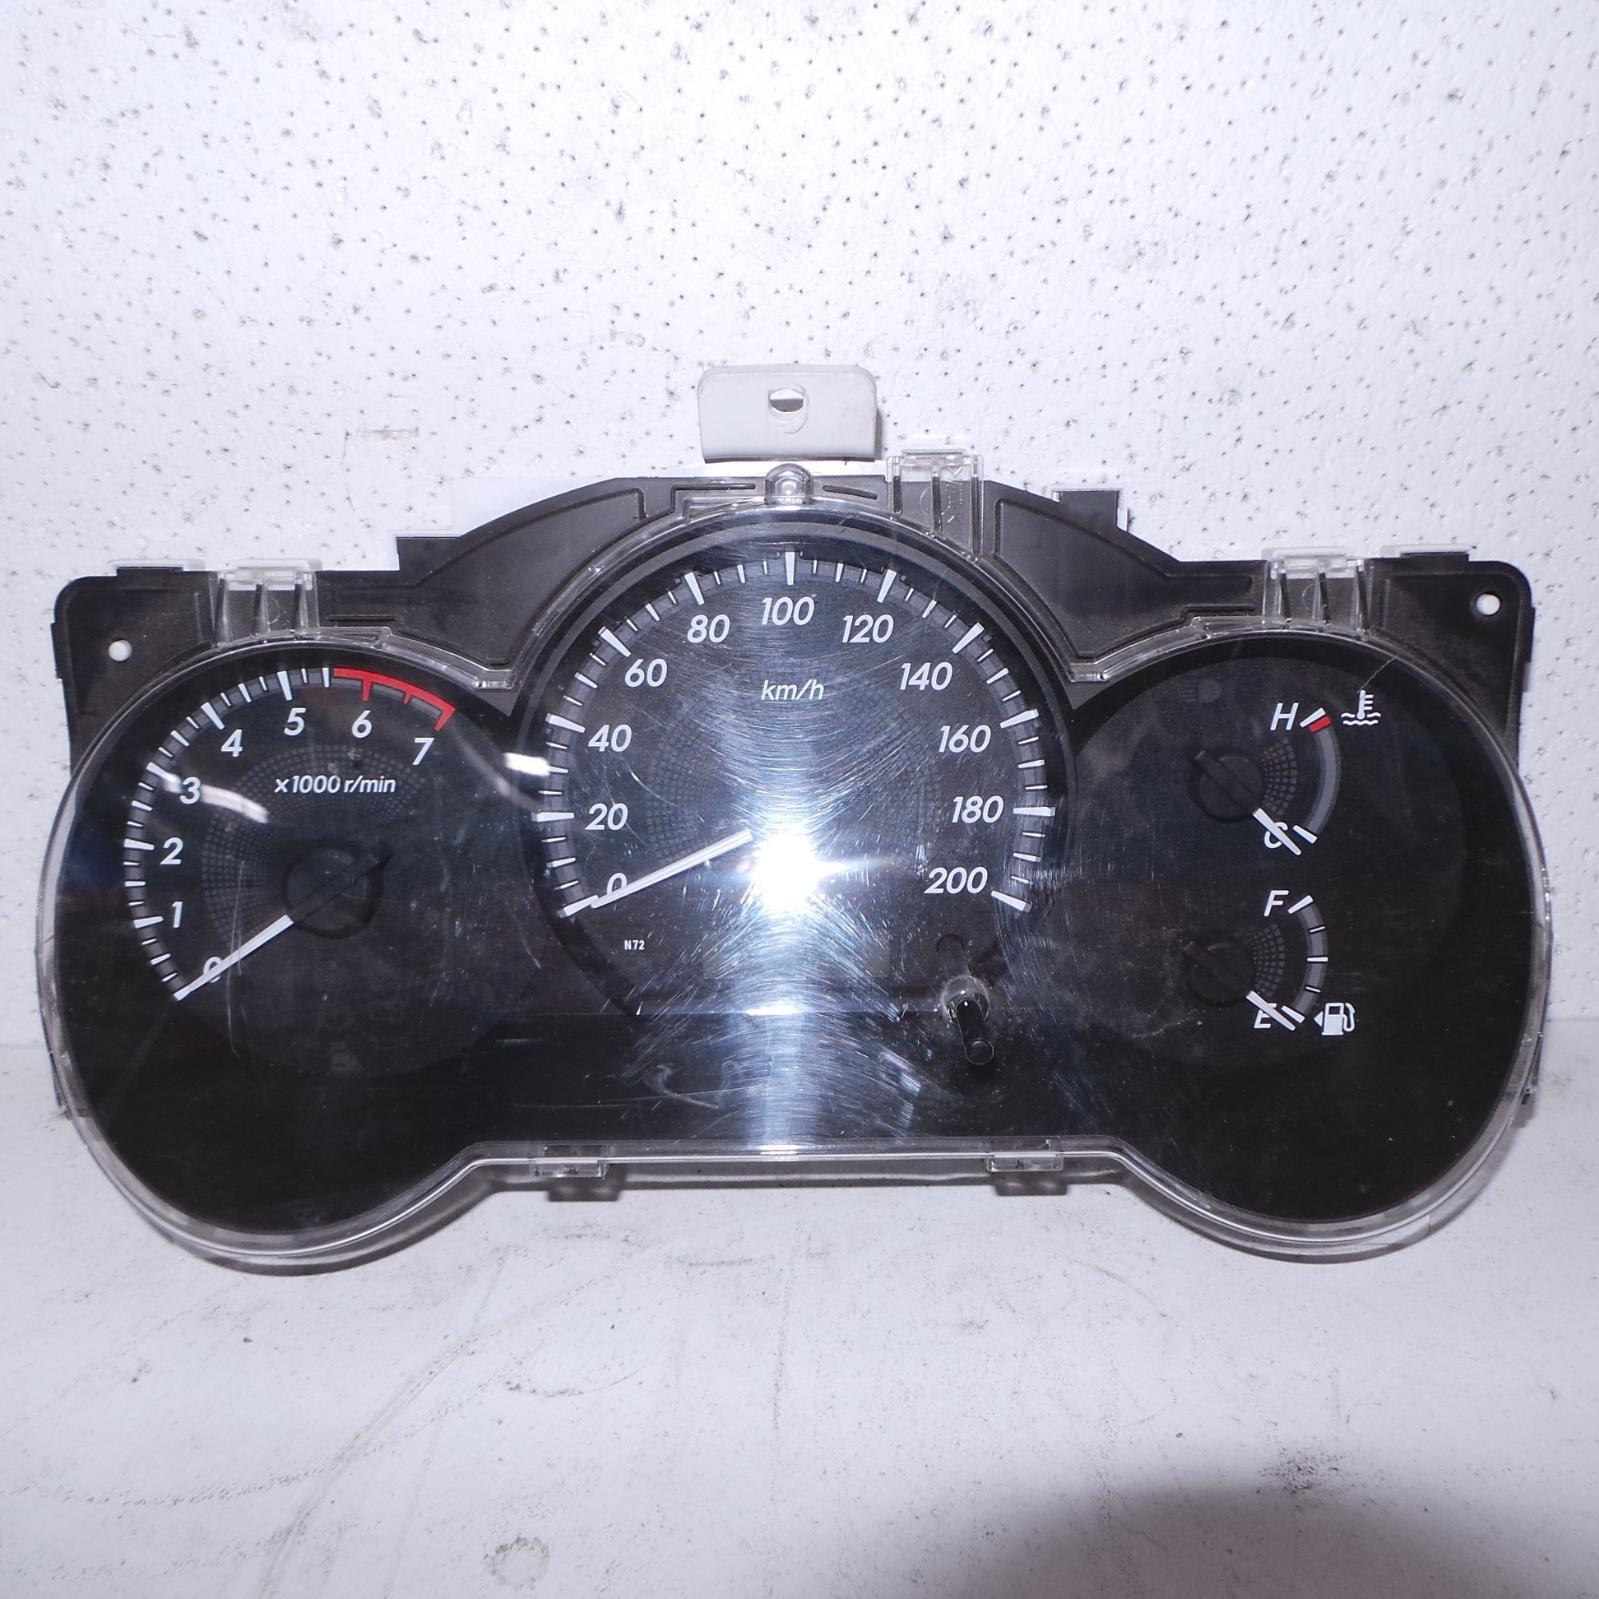 TOYOTA HILUX, Instrument Cluster, PETROL, 2.7, MANUAL T/M, 2WD, WORKMATE, 07/11-08/15